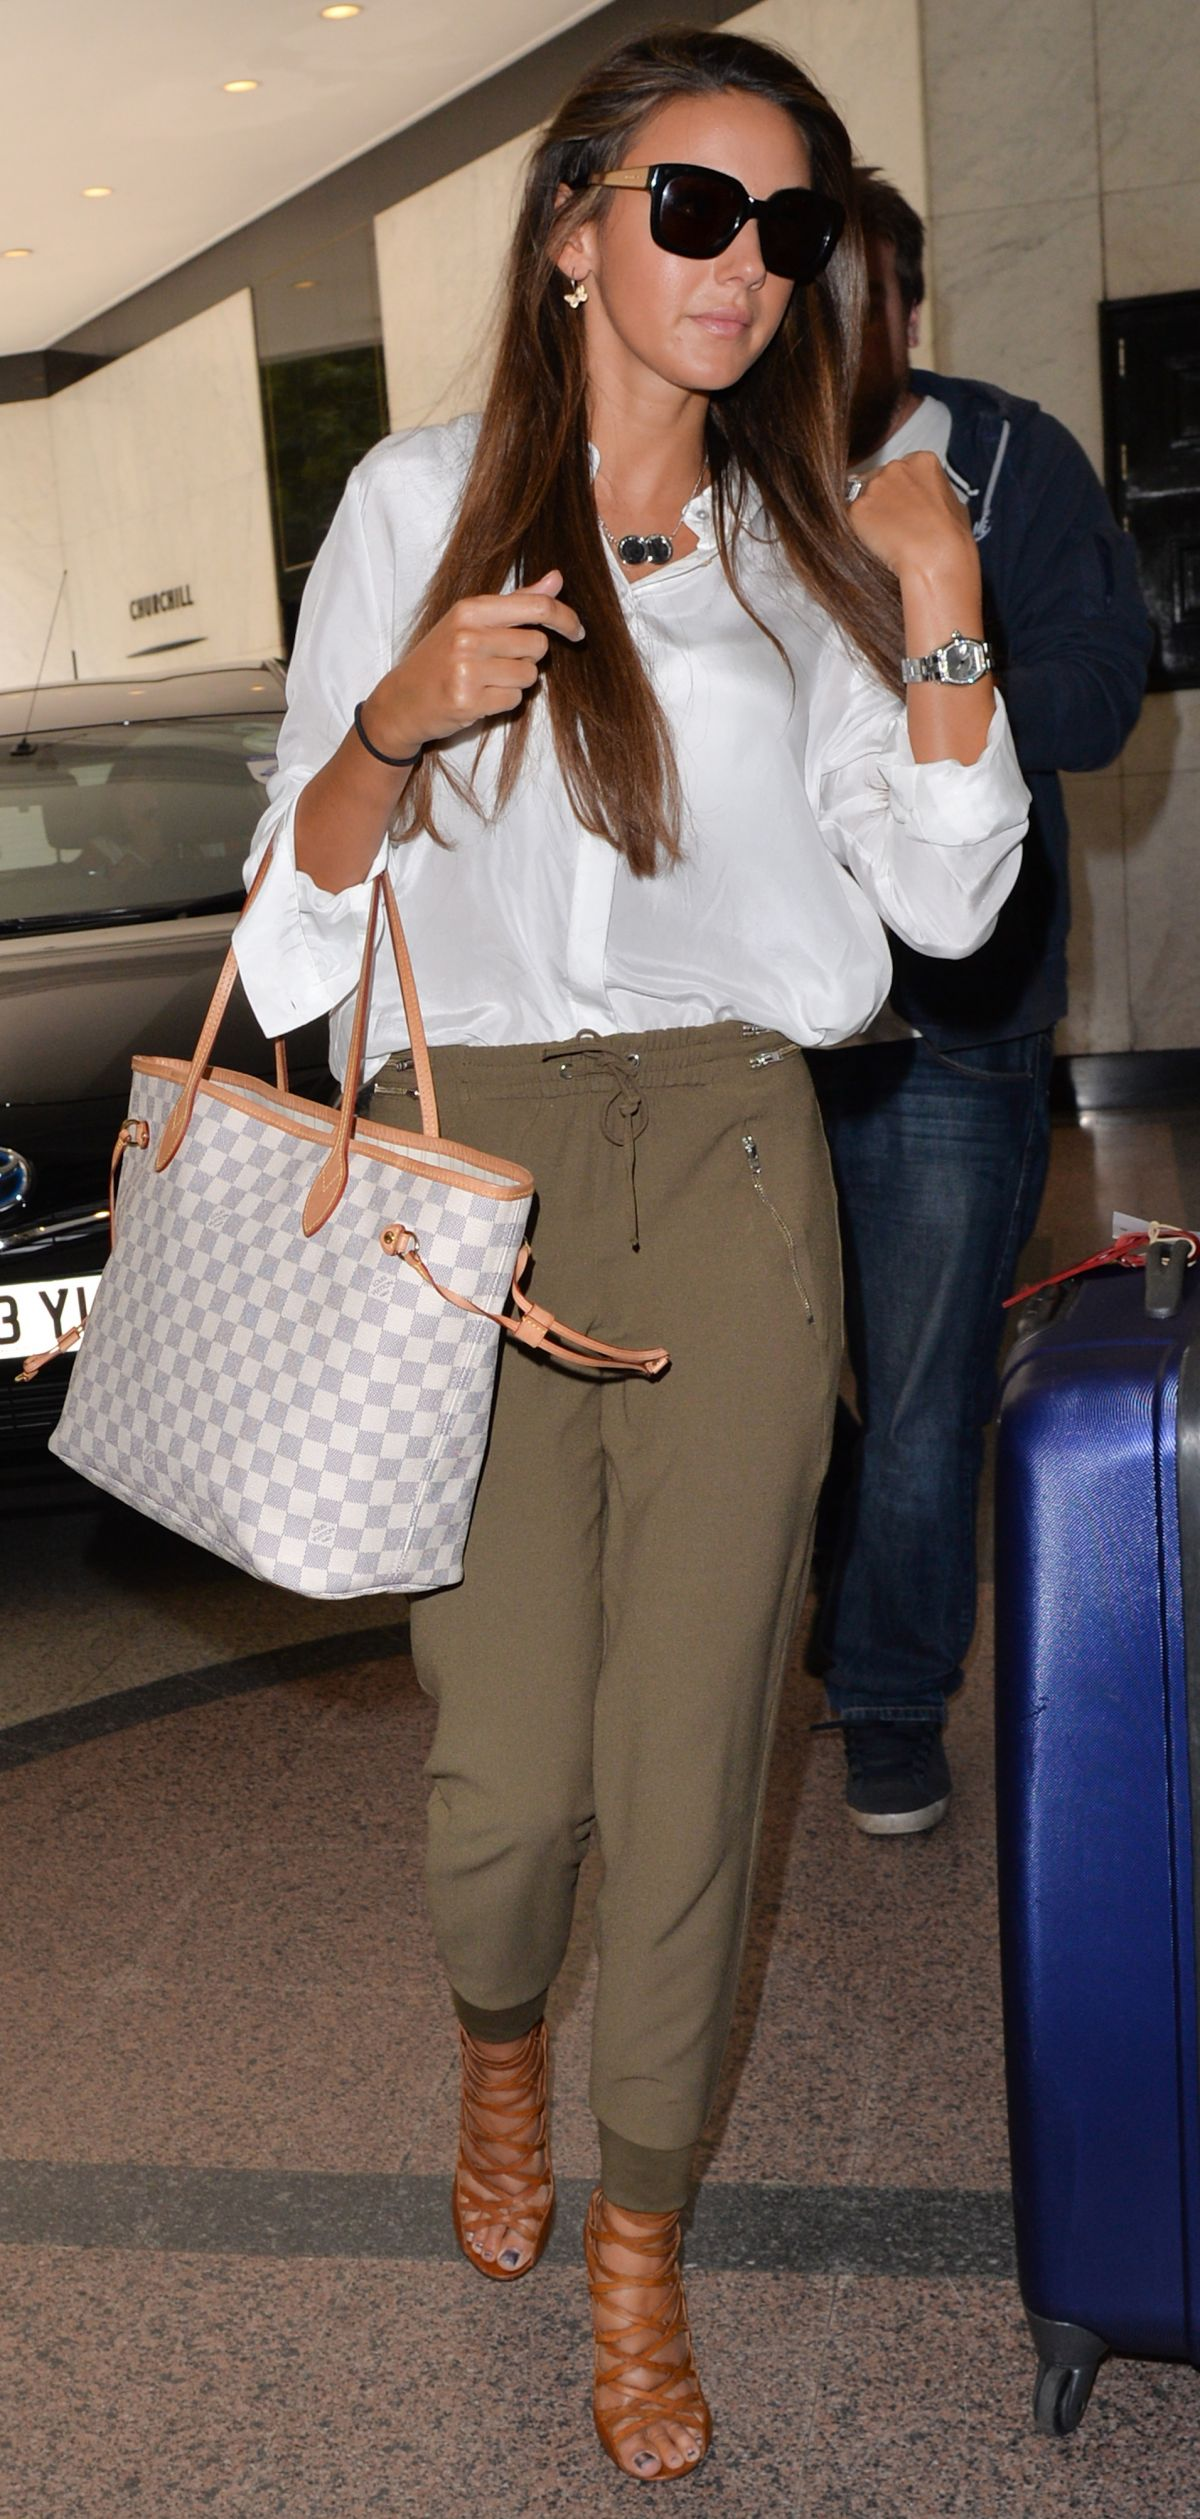 MICHELLE KEEGAN Arrives at Her Hotel in London